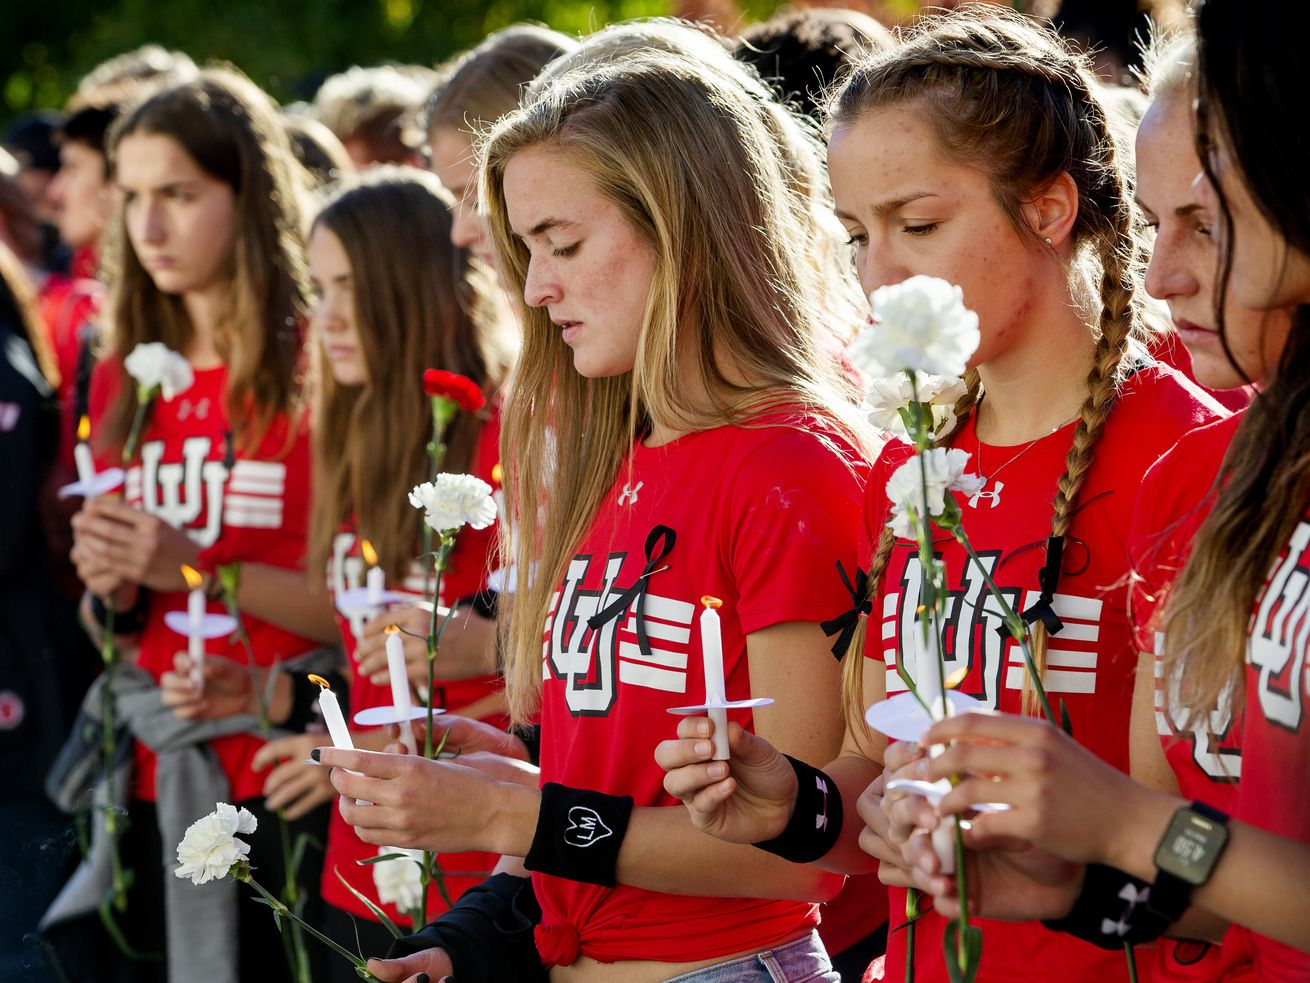 Members of the University of Utah track team attend a vigil for Lauren McCluskey at the Park Building on Wednesday, Oct. 24, 2018. McCluskey was killed by a man blackmailing her over intimate photos, which were then shared by a police officer investigating the case. Utah lawmakers voted to close a loophole that prevented charges against the police officer.